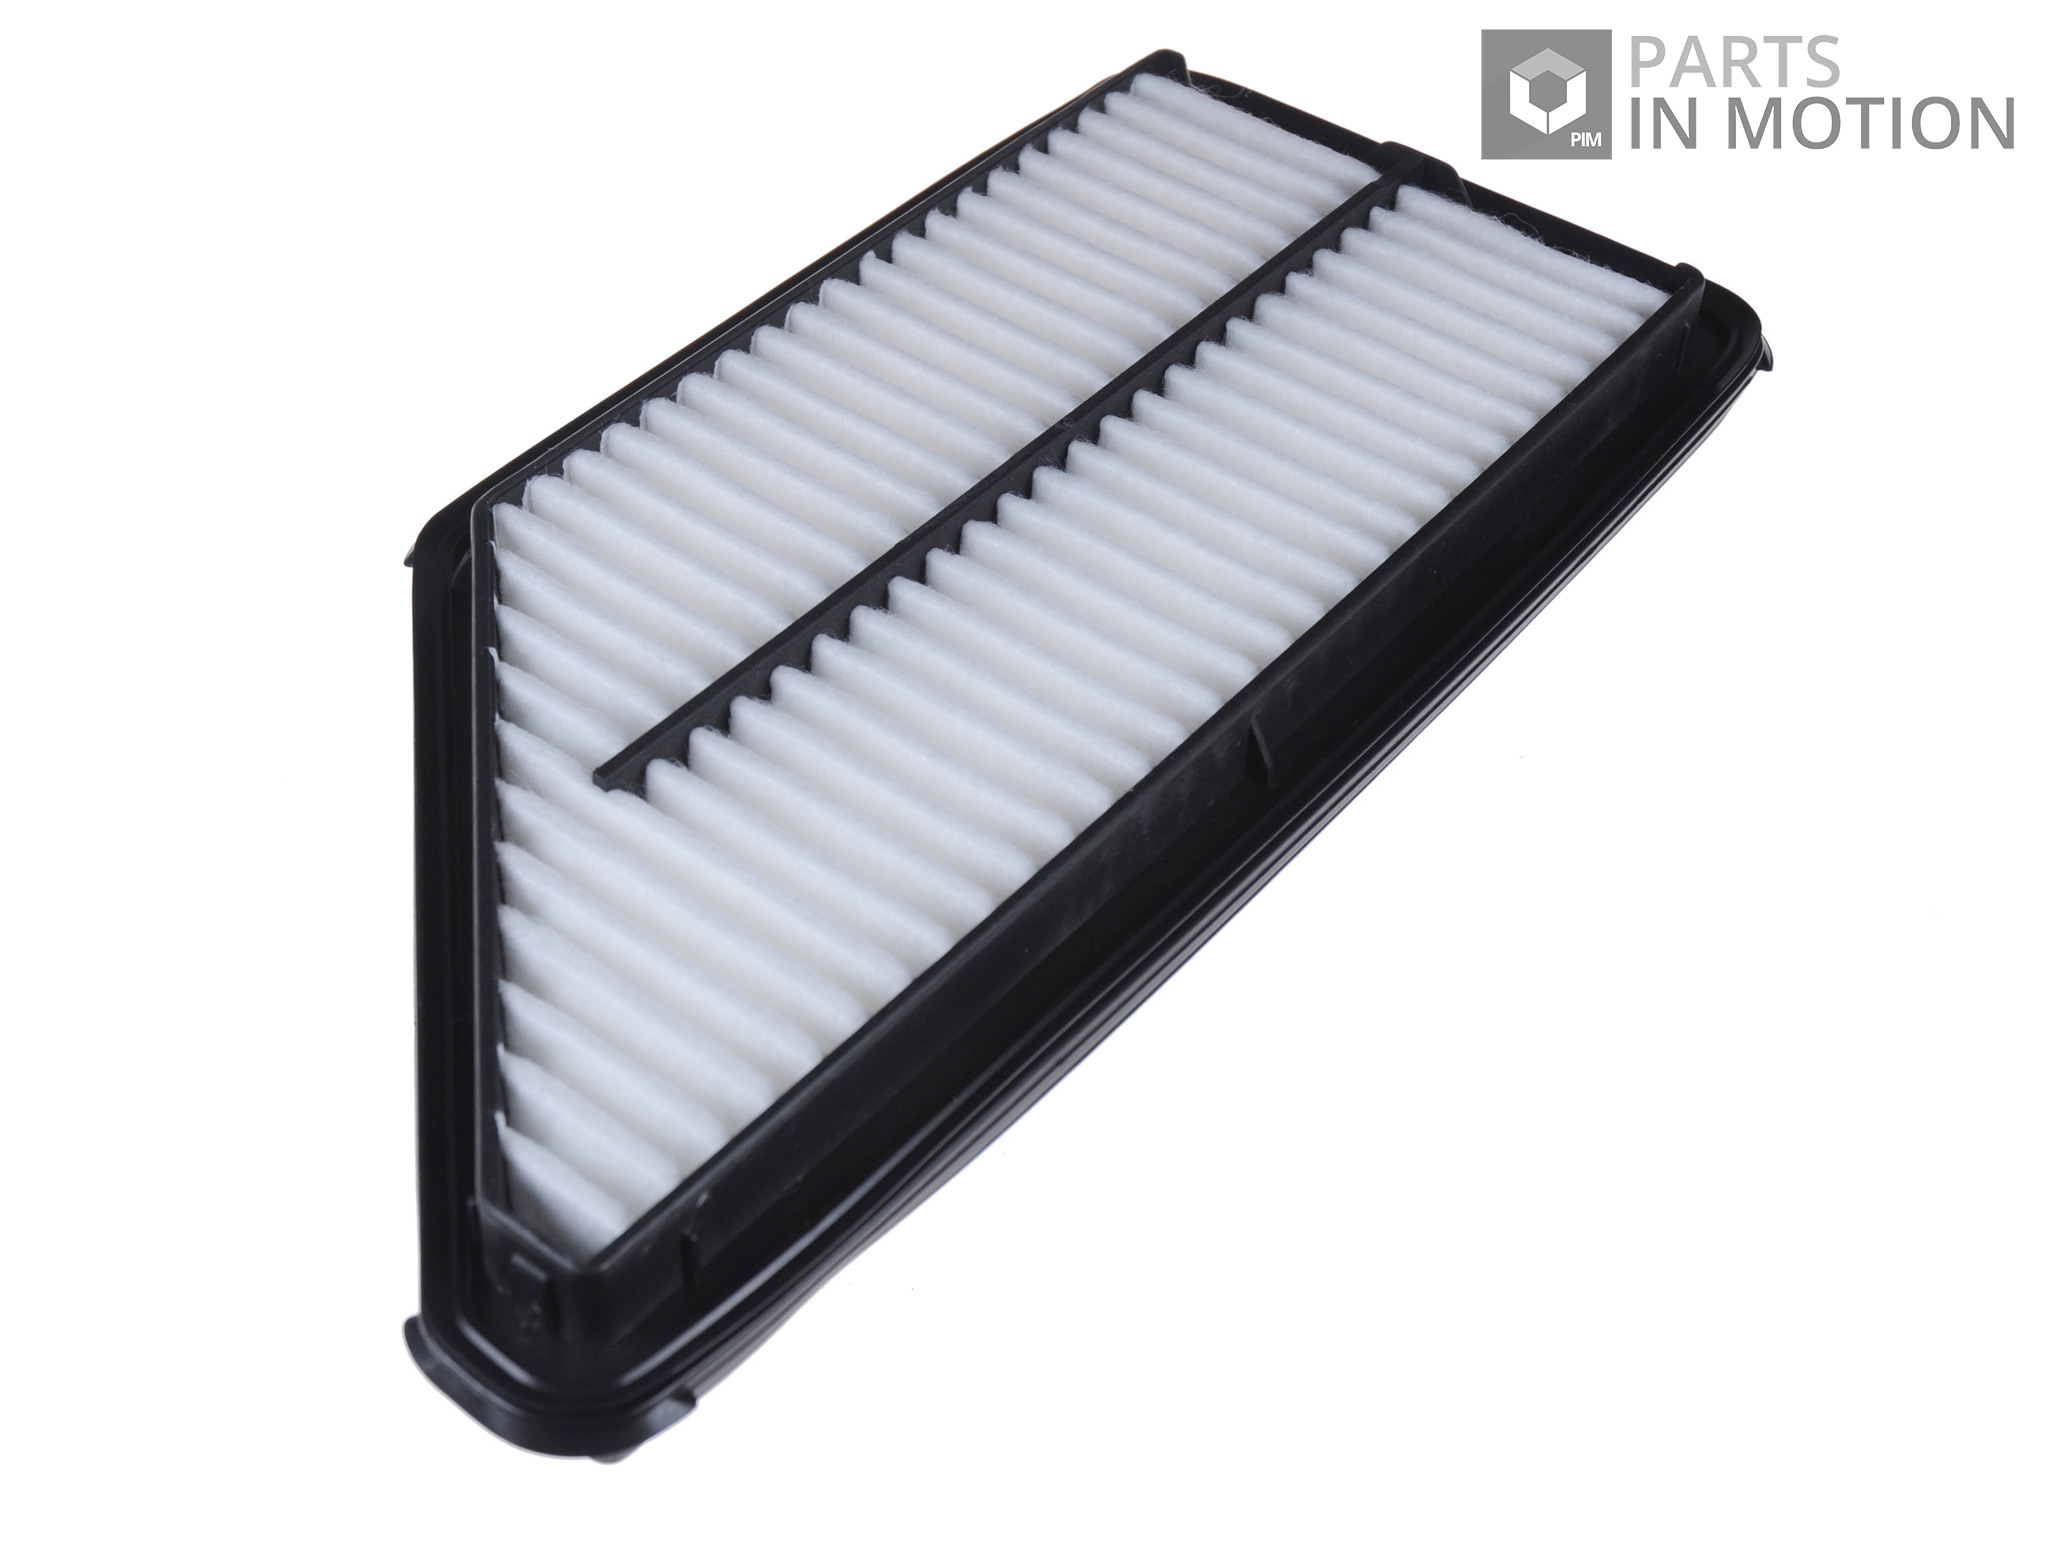 Air Filter Fits Honda Prelude Mk5 22 96 To 00 H22a5 Adl 17220p13000 Fuel Image Is Loading 2